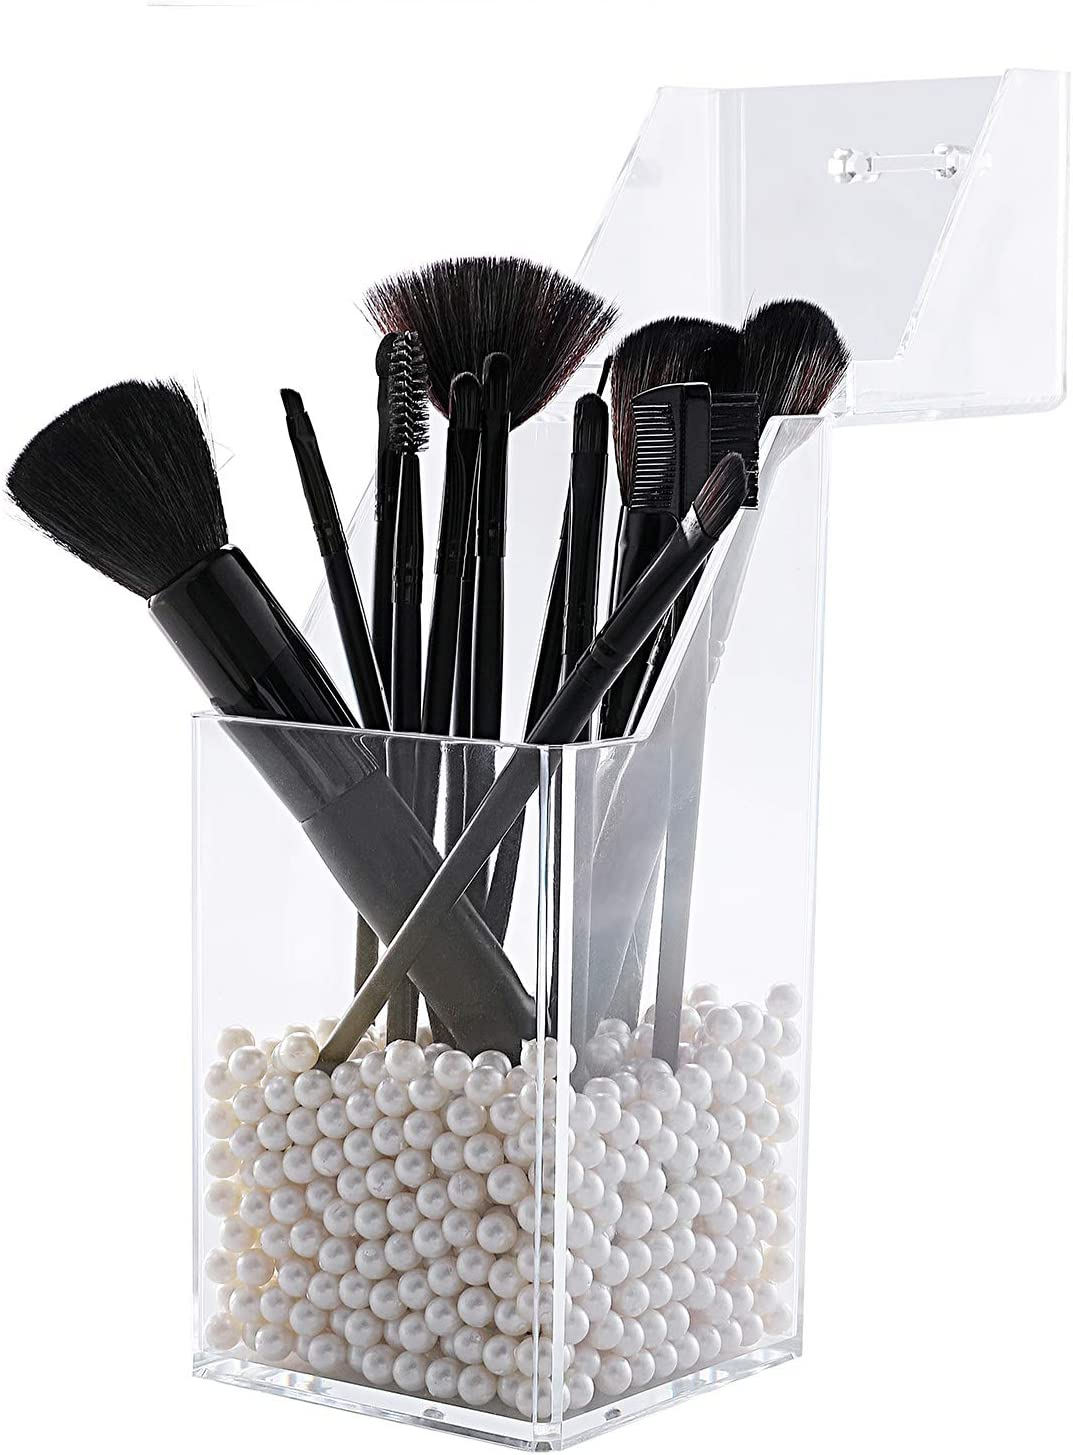 lureme Makeup Brush 70% OFF Outlet Holder with Clear Max 82% OFF Lid Dustproof Orga